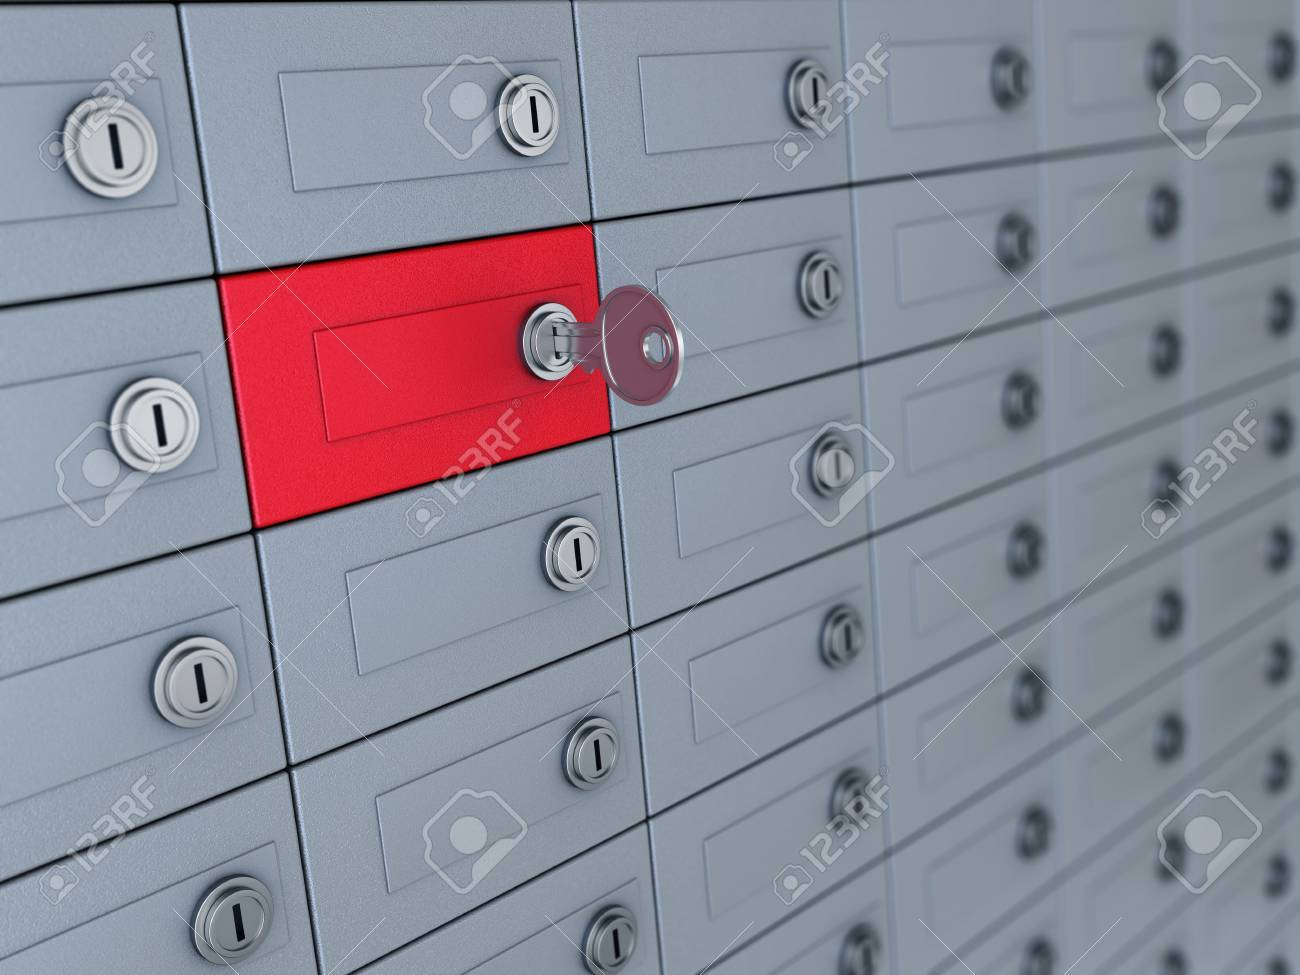 3d illustration of deposit boxes with one selected - 32644240